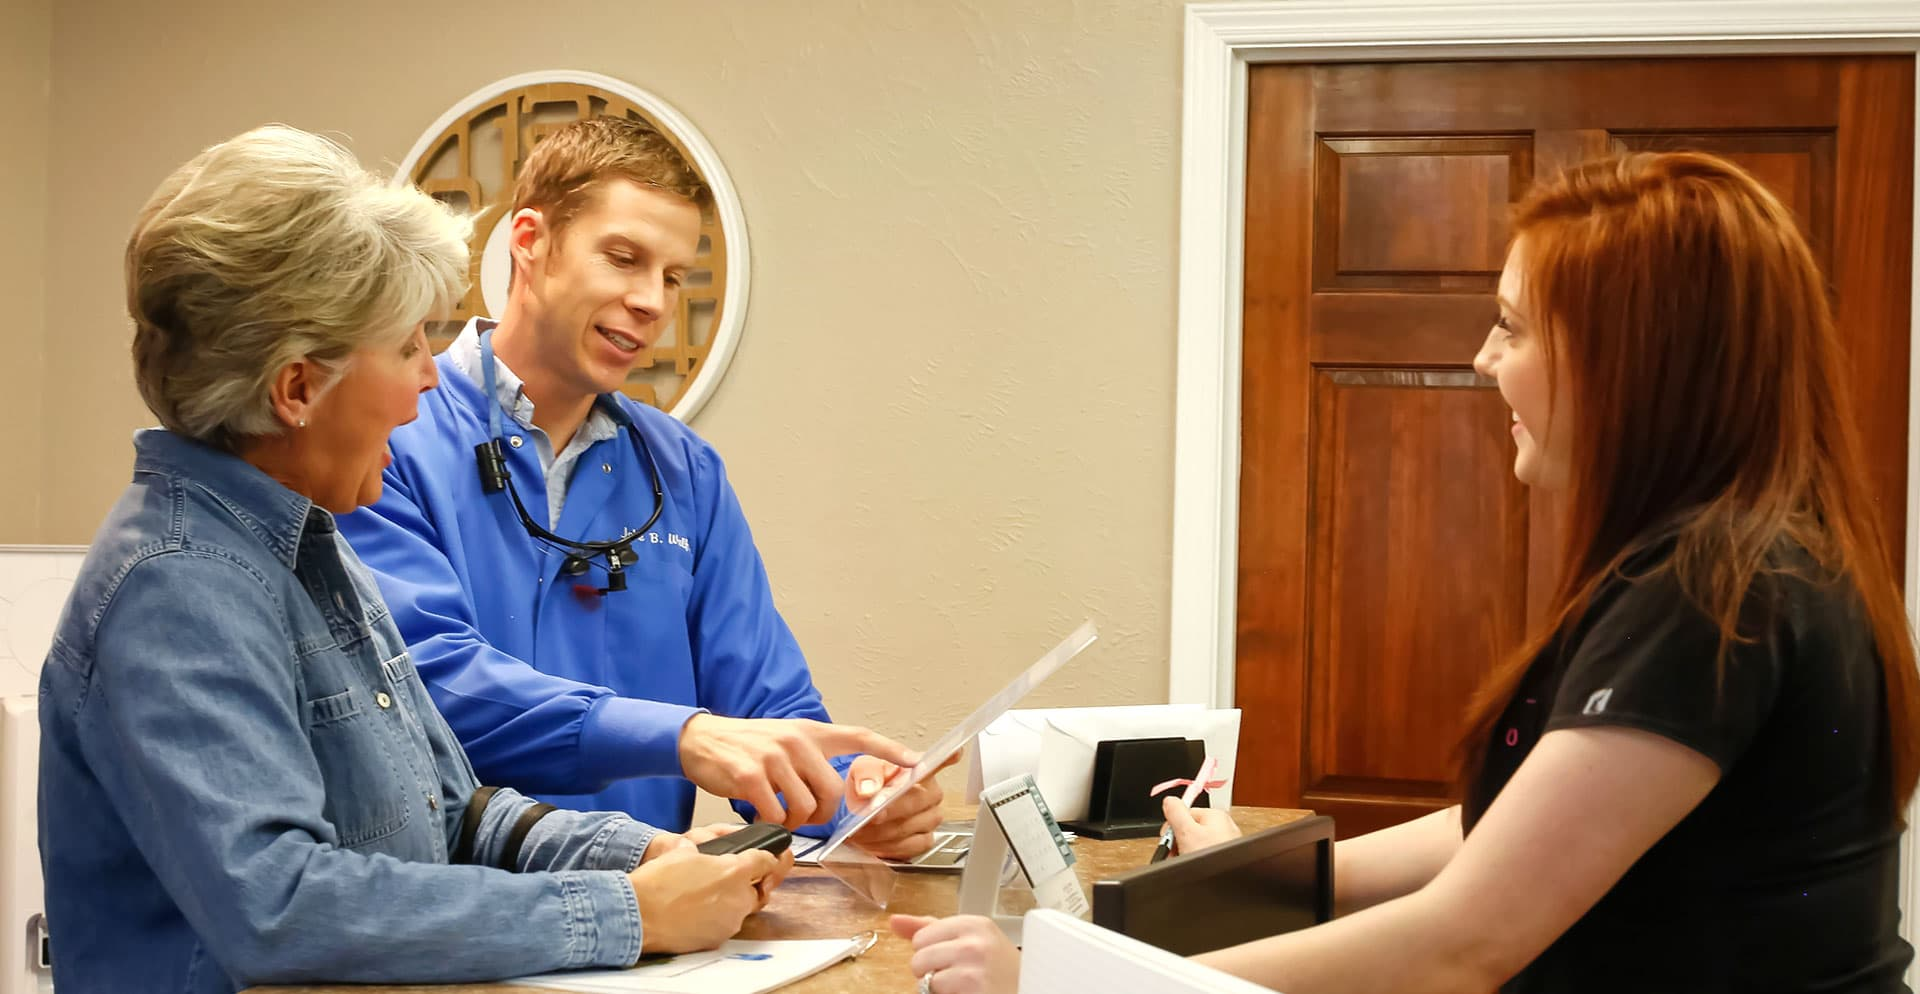 Dr Wolf - Family Dentist in Las Cruces